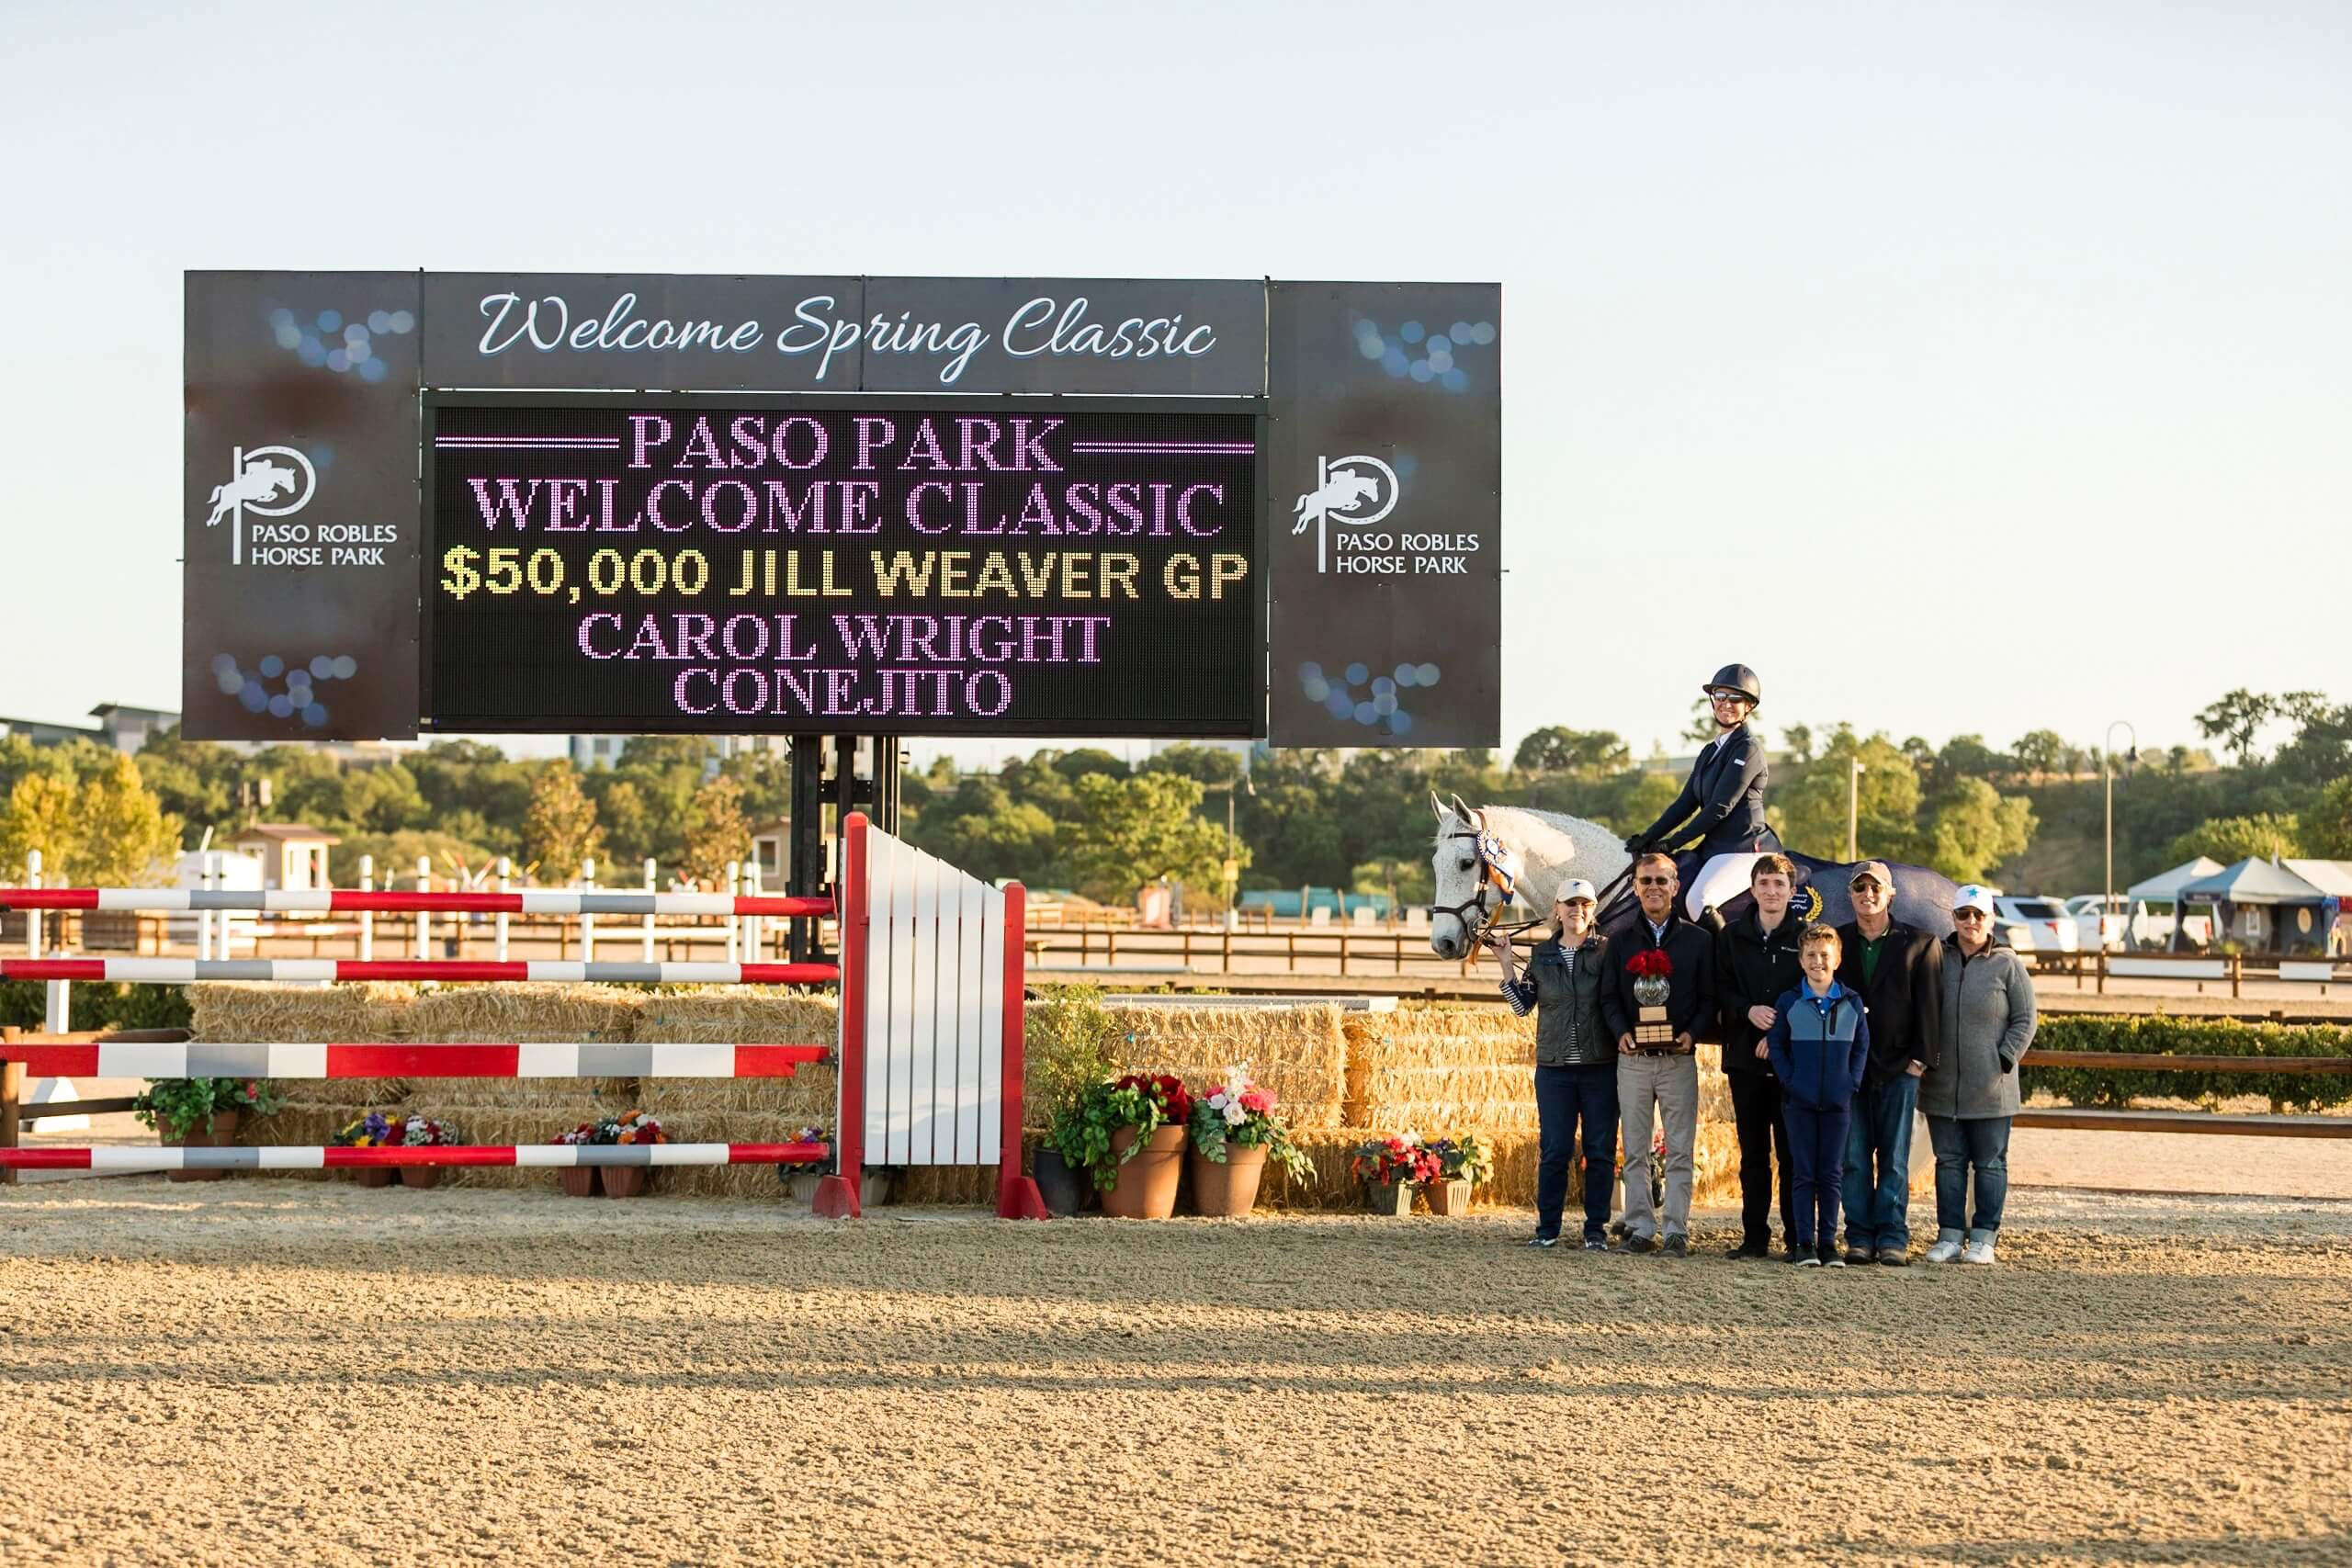 Paso Robles Horse Park Management Holds First USEF A-Rated Show